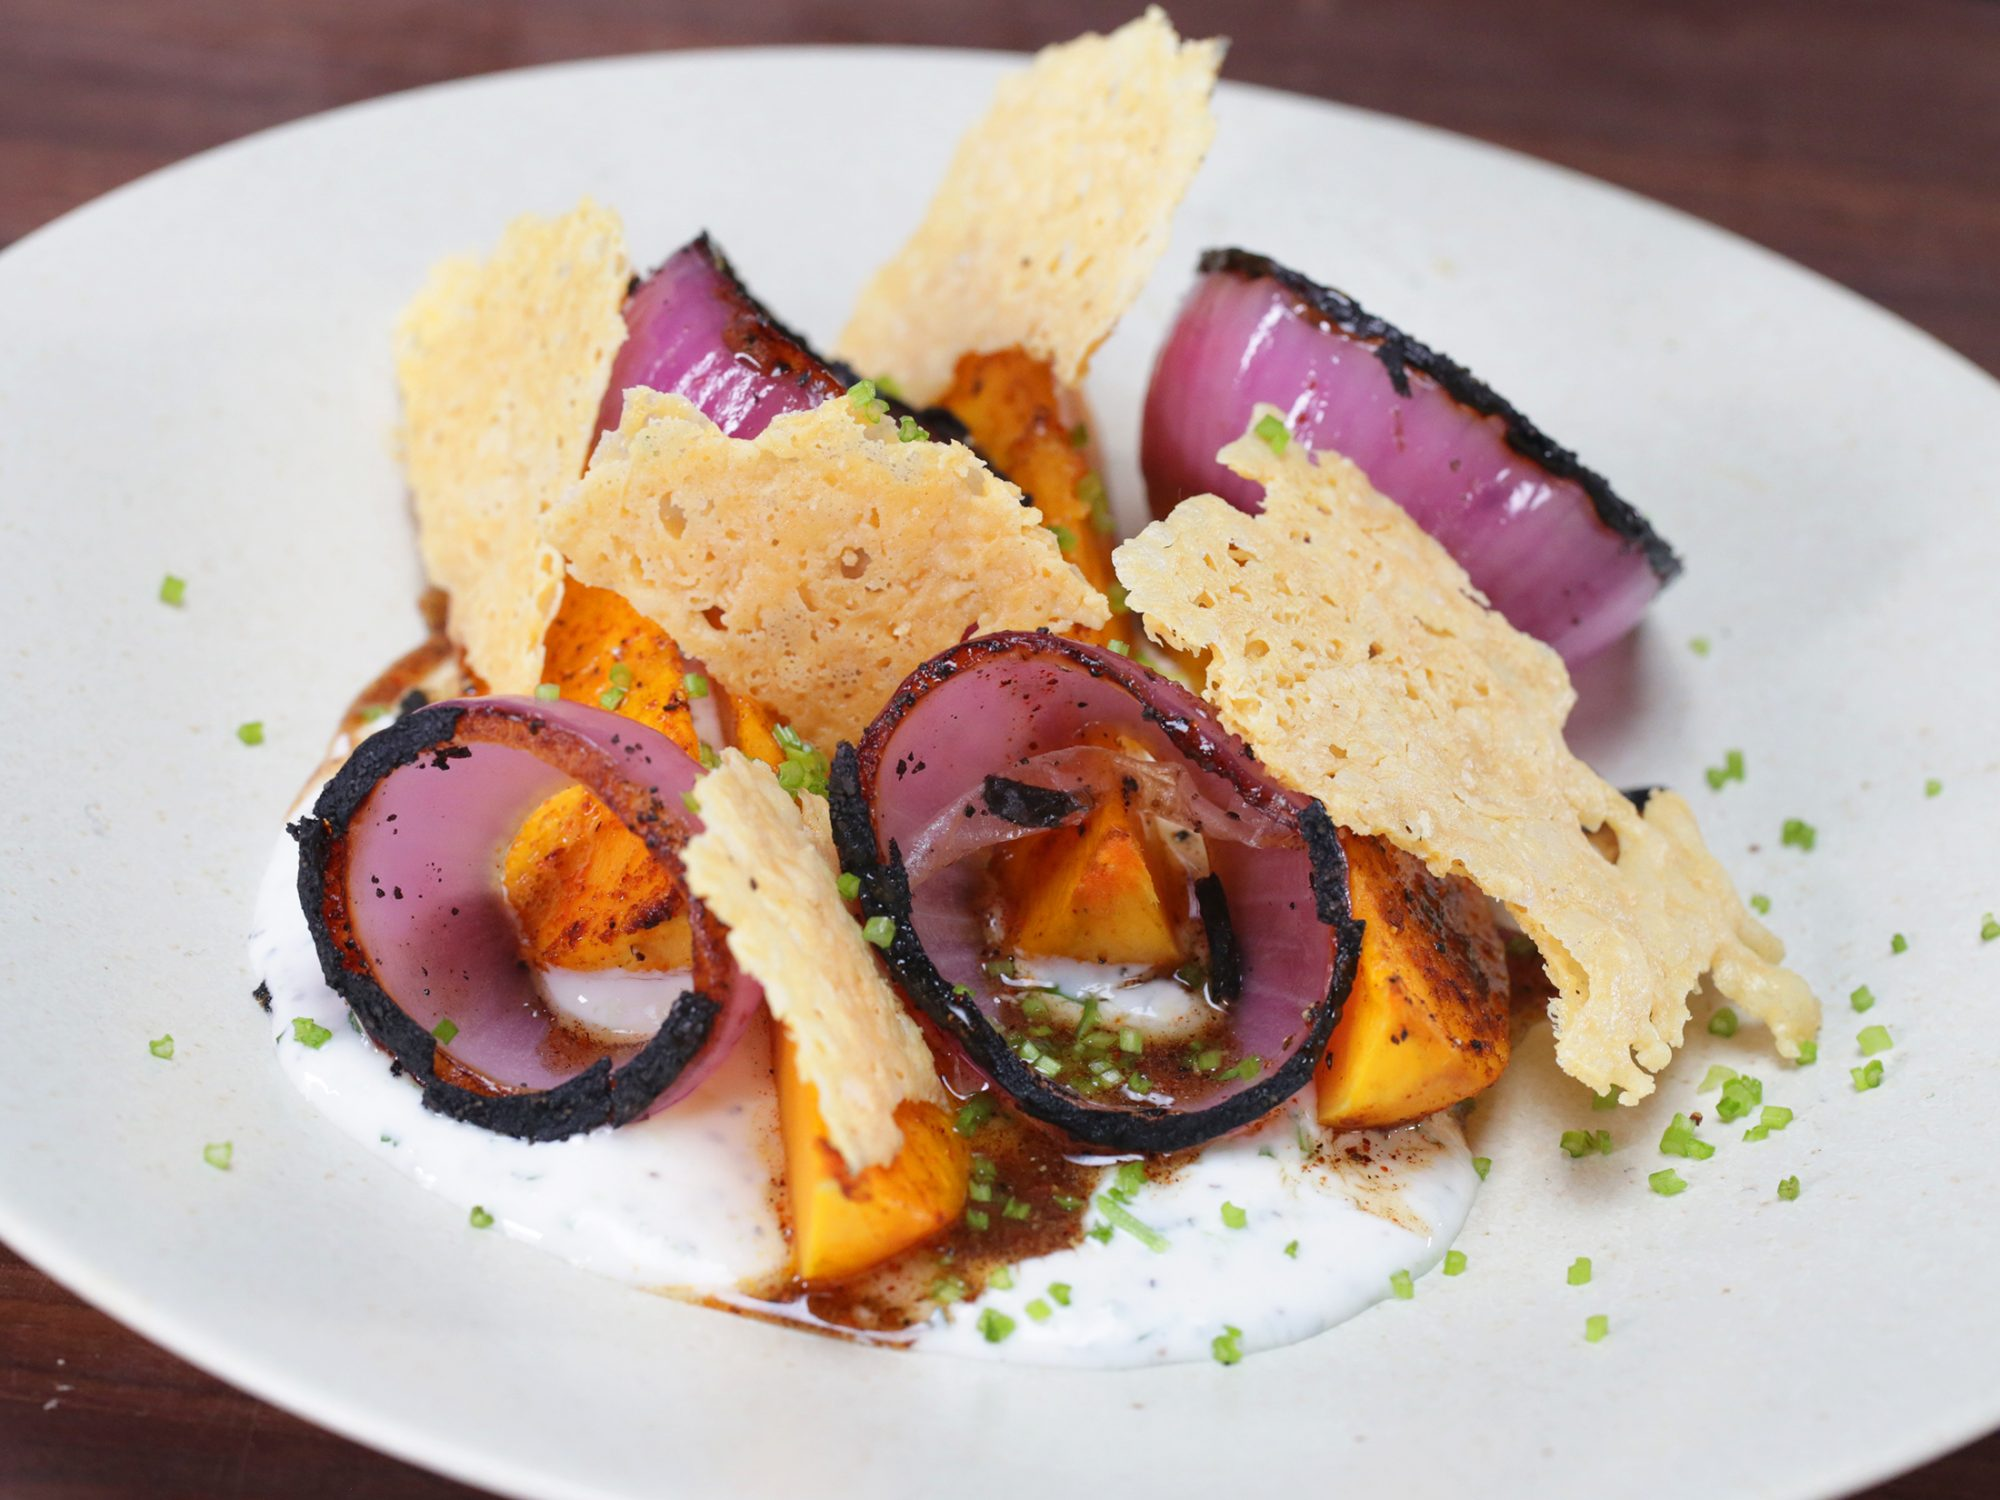 Roasted Winter Squash with Chipotle Honey, Tillamook Cheddar Crisp, Lime Yogurt, and Charred Onion image